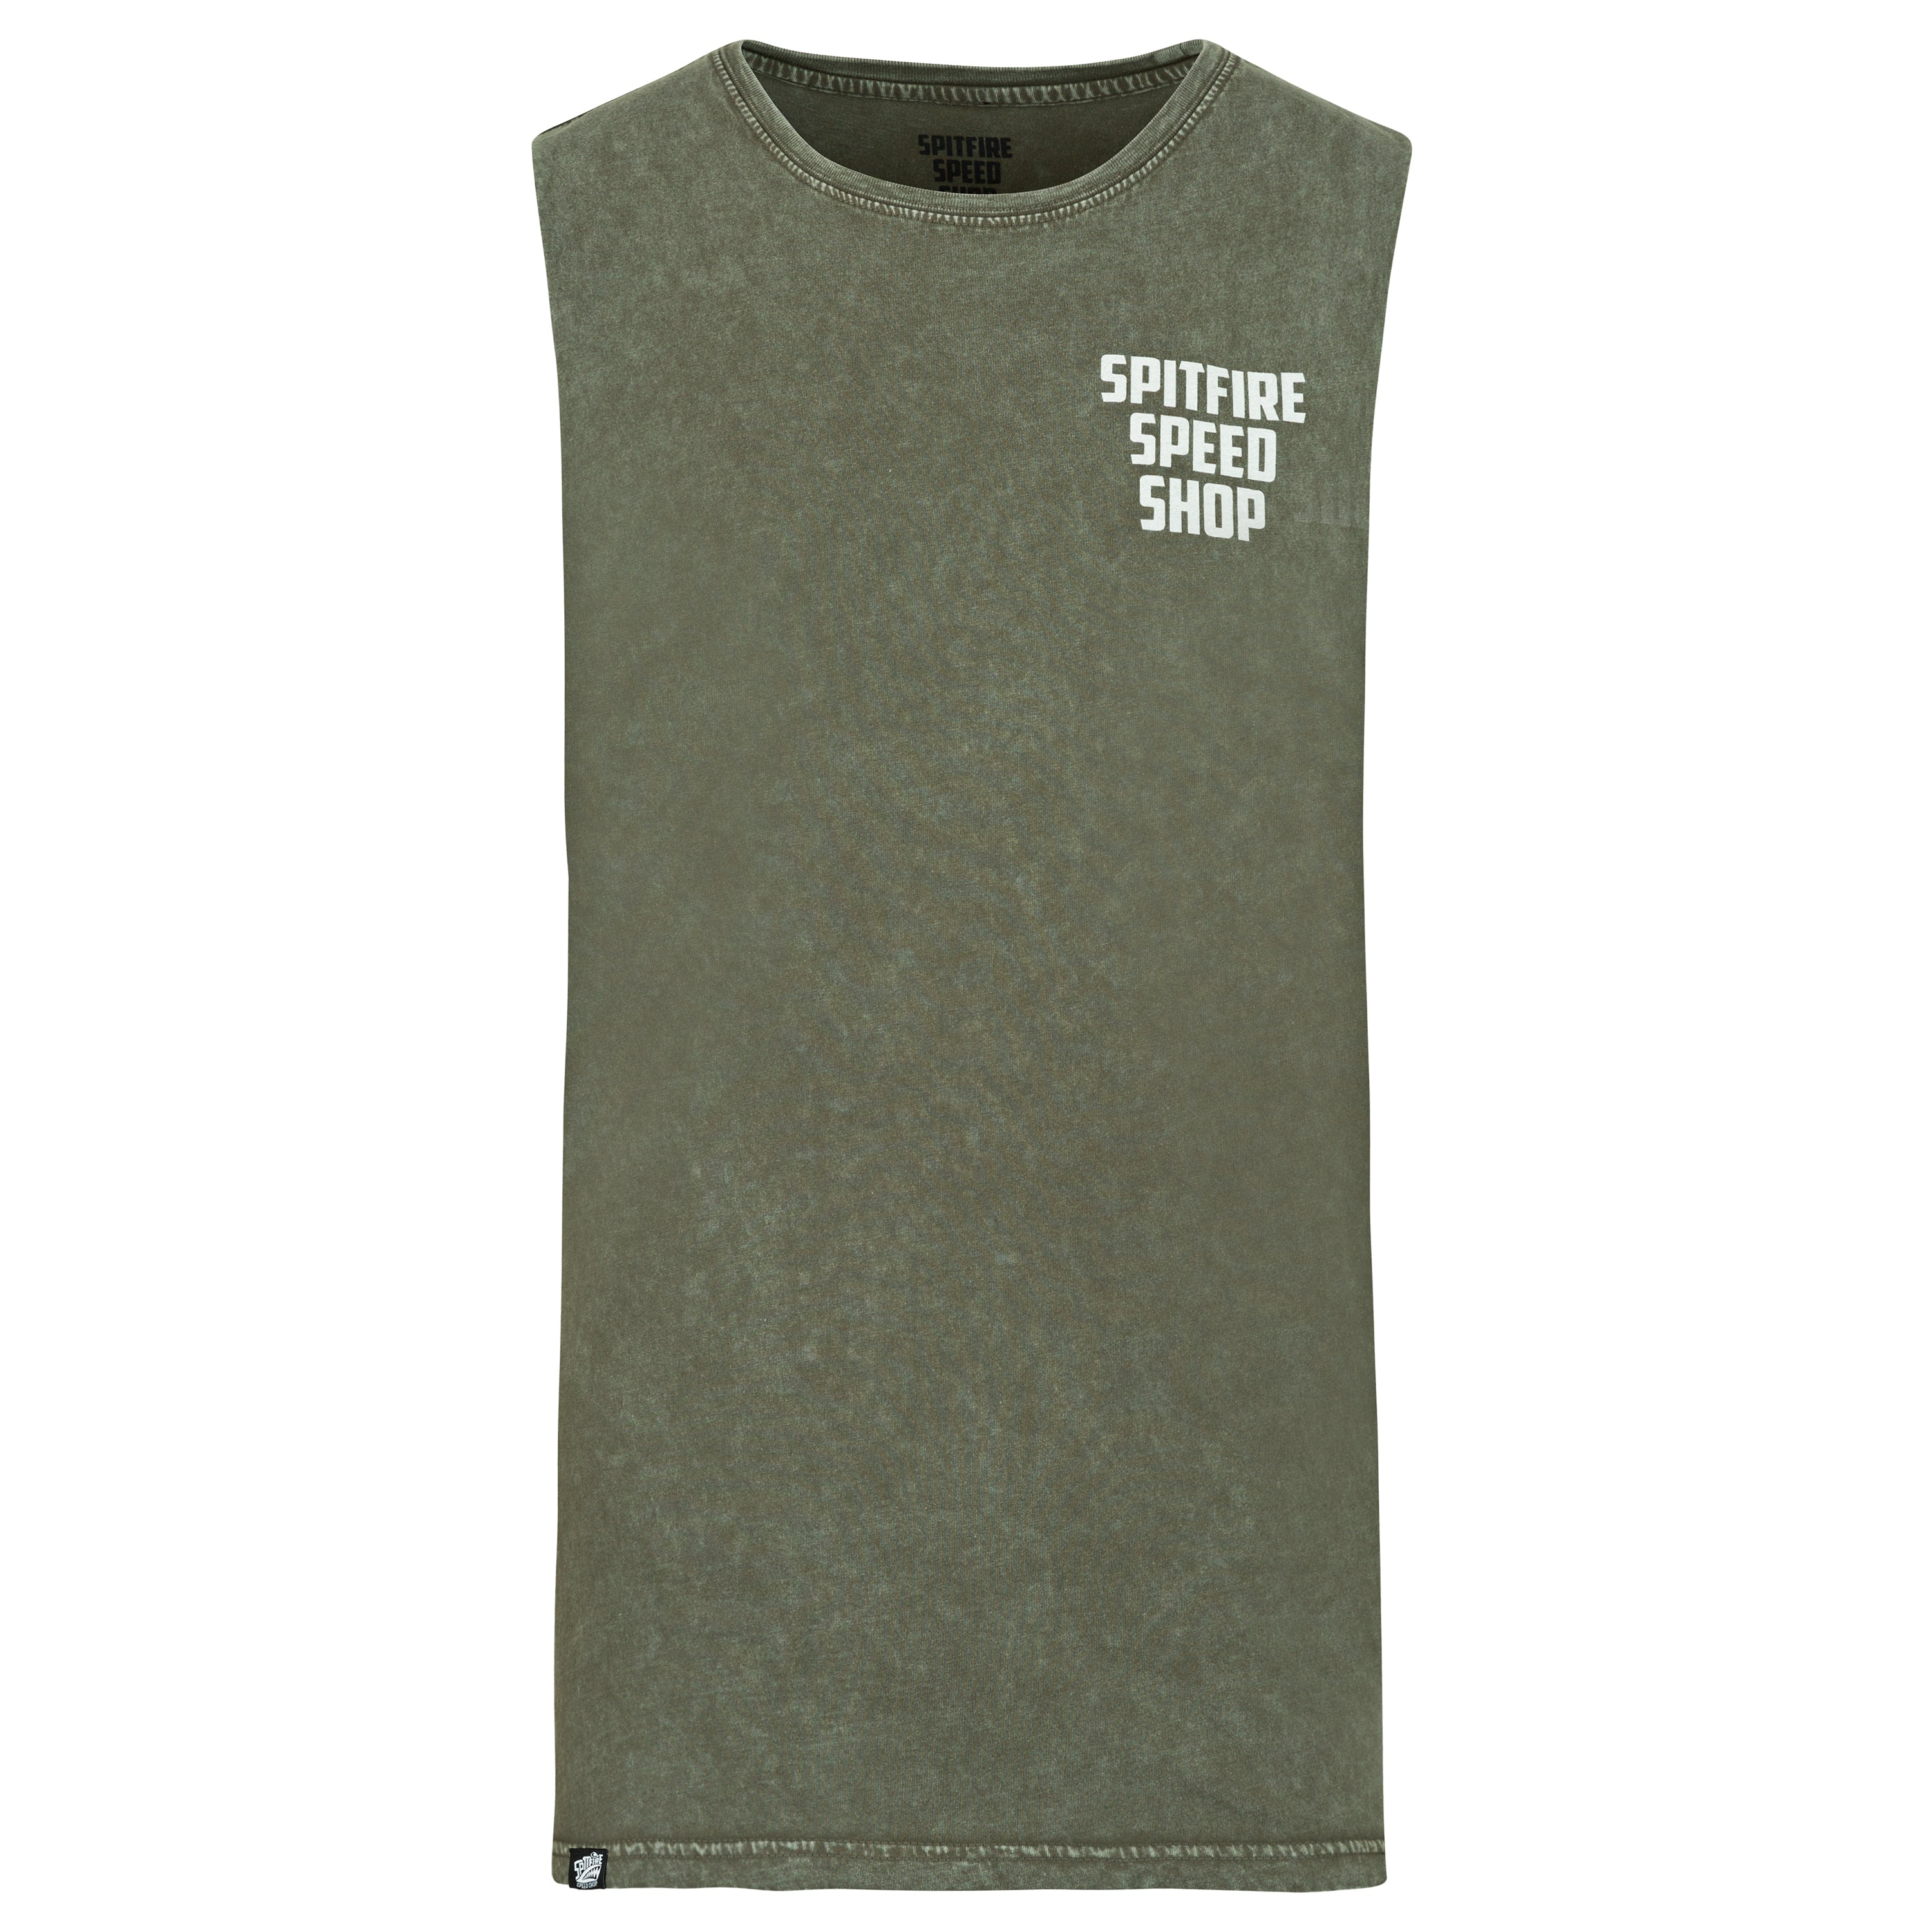 Spitfire Whitewash Vest, Olive Green with White Logo